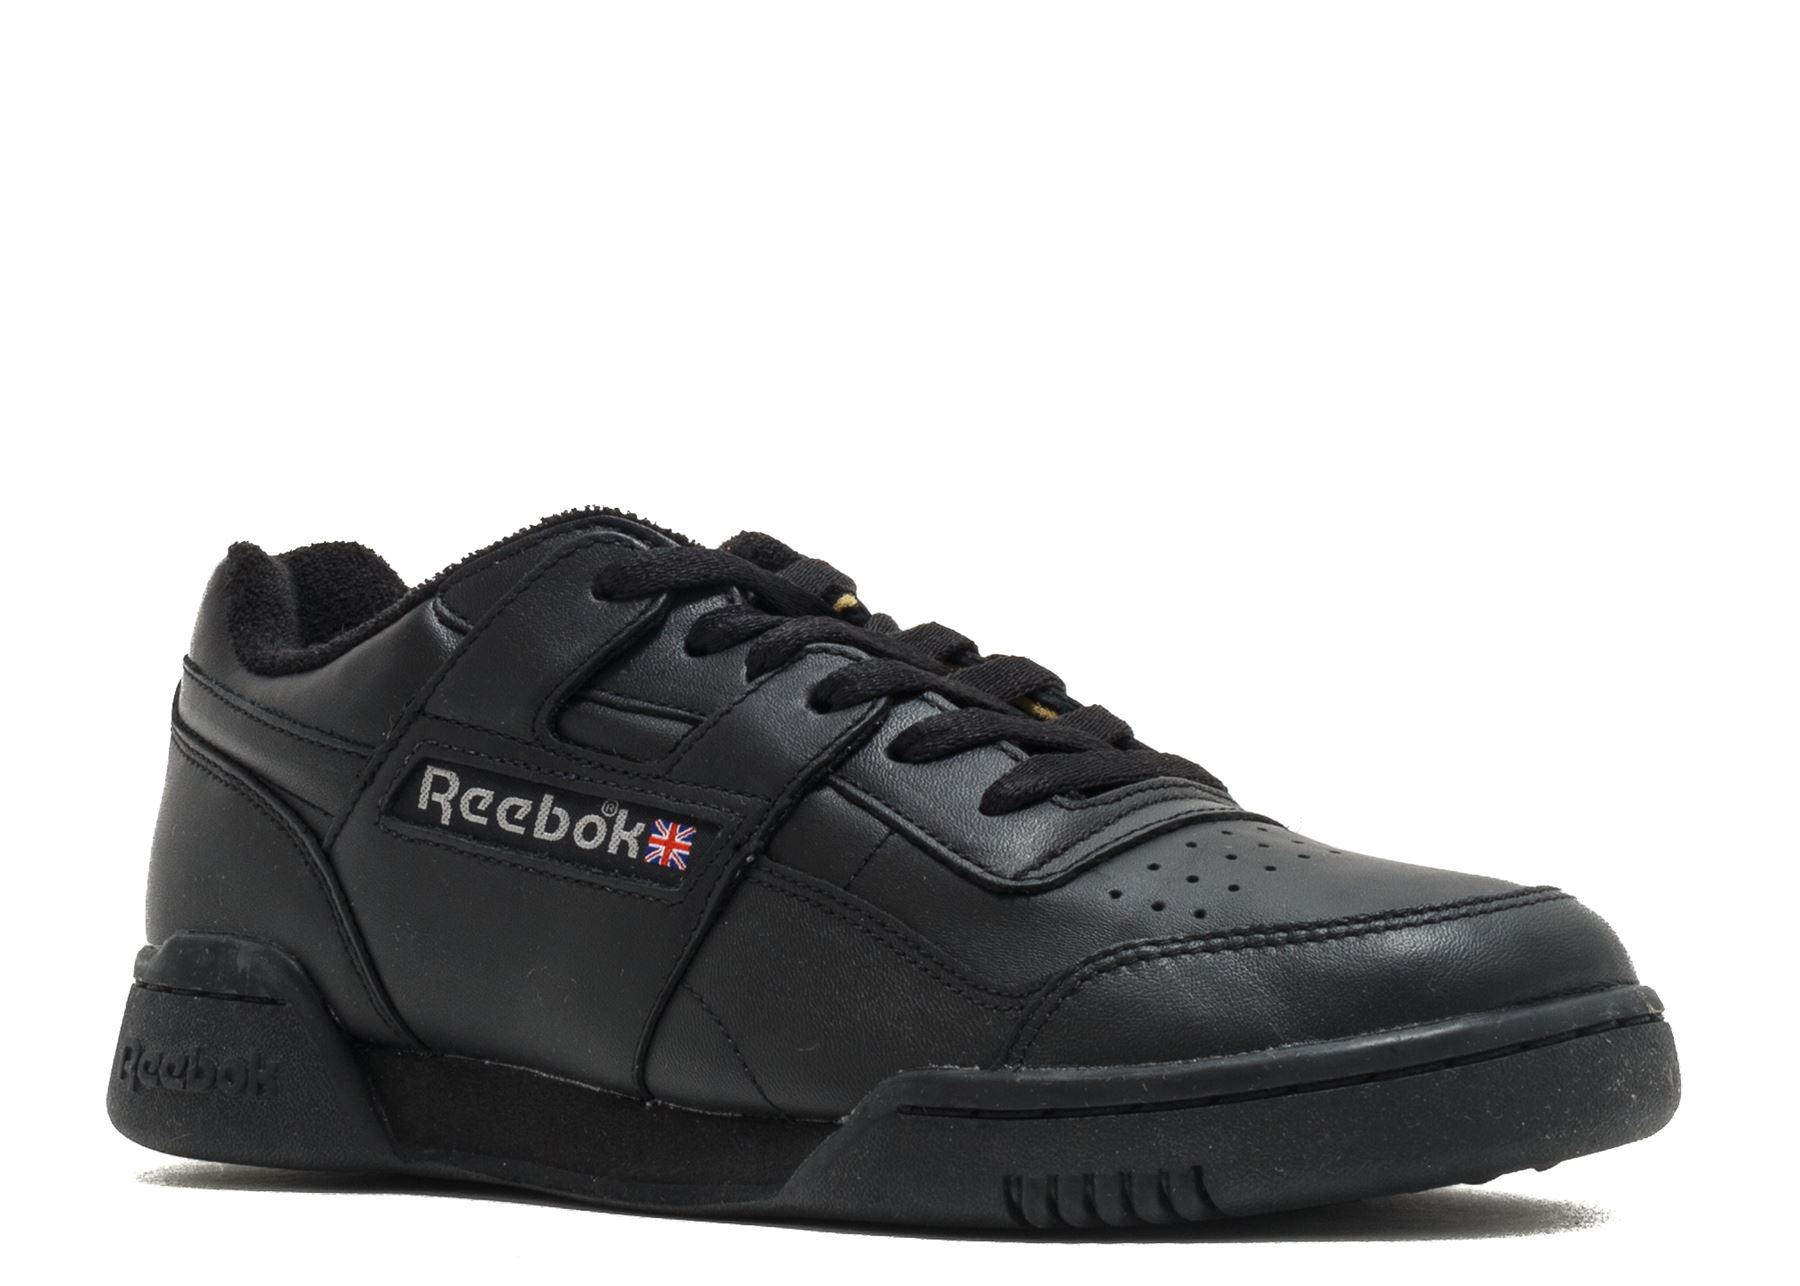 info for 452cd 33e1b Reebok Workout Plus Vintage Trainers Mens Black Sneakers Gym Shoes Footwear